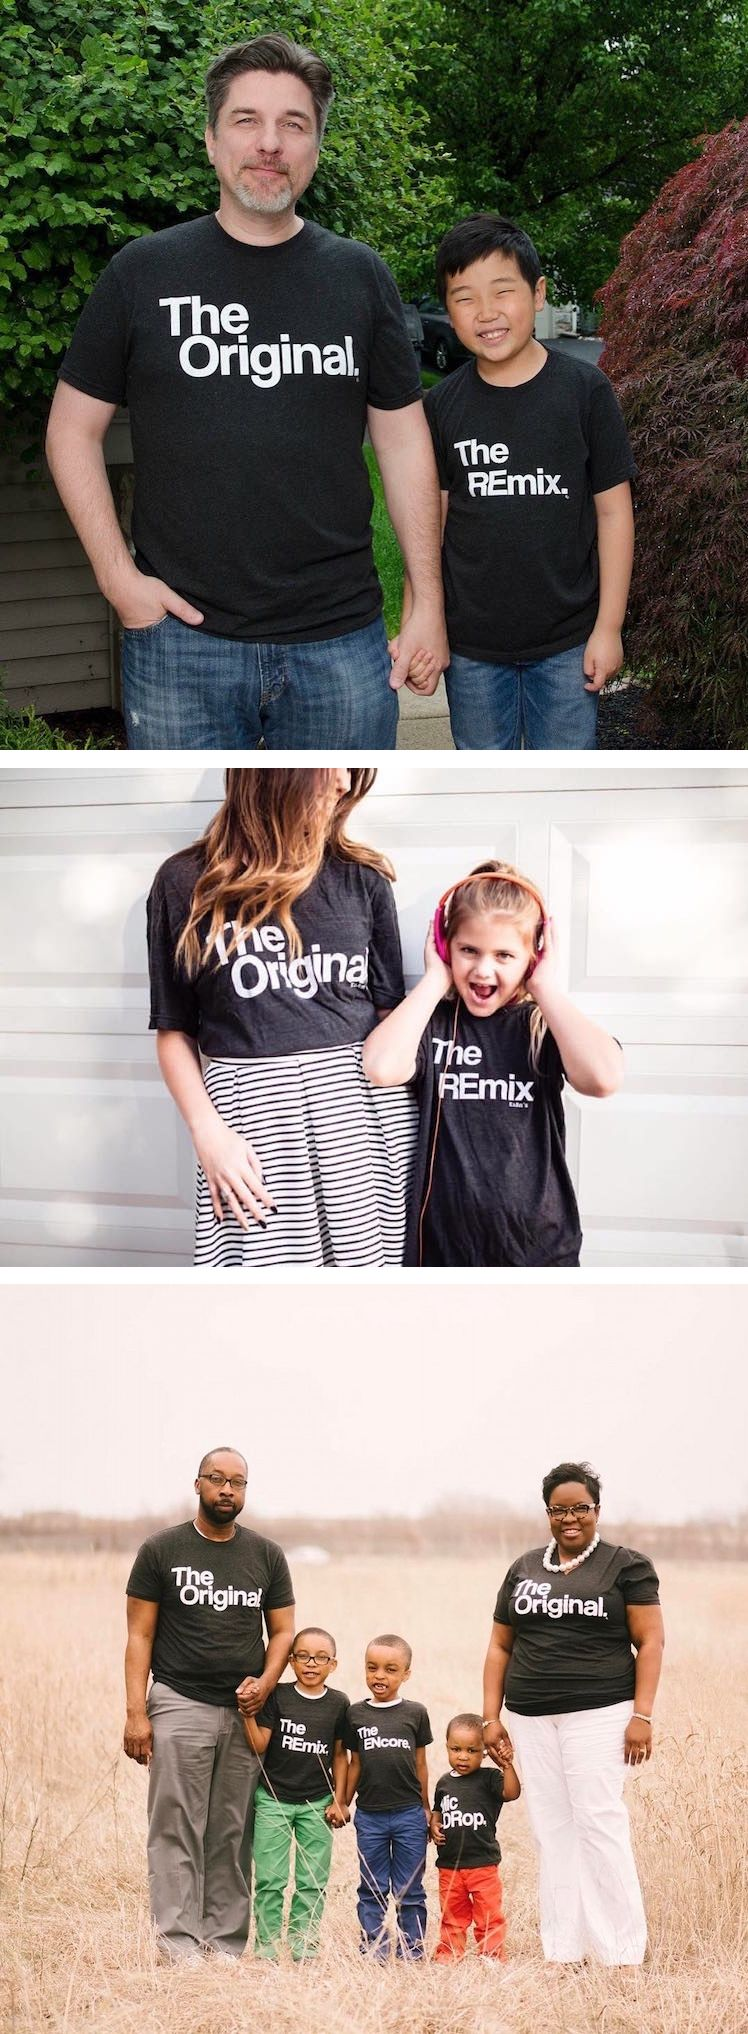 5cf8de31 Clever Pair of T-Shirts Turn Father and Son into 'The Original' and ...